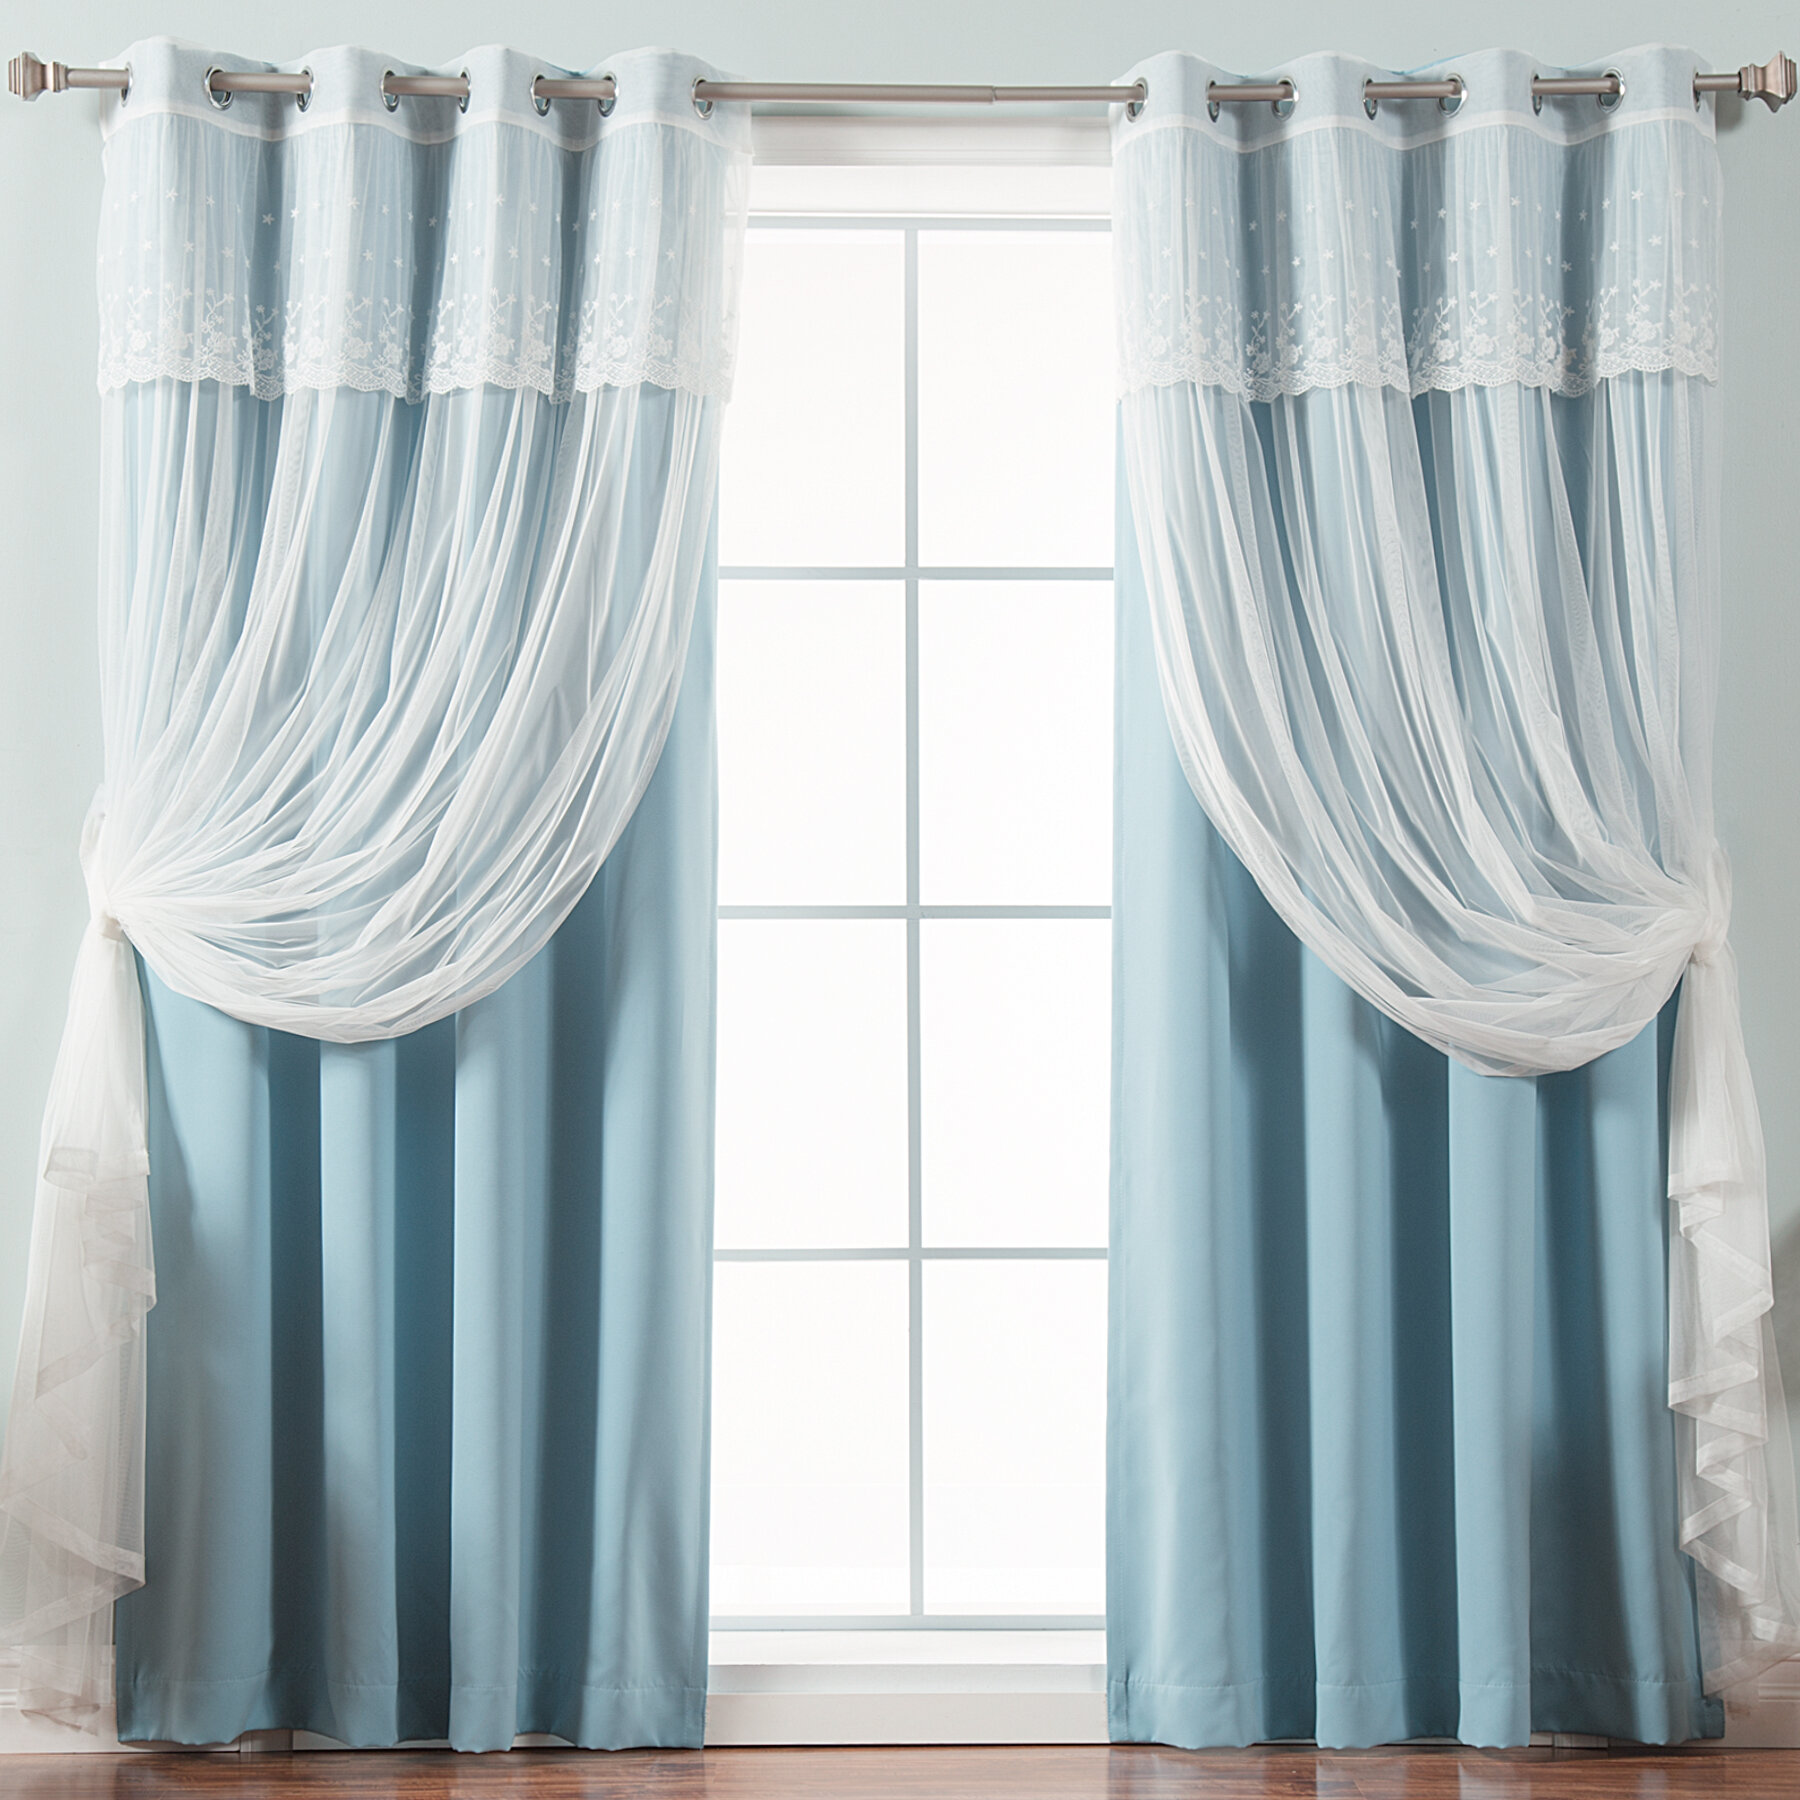 living home decor blackout mint and interior curtain panels r liner drape bath goods decorating kitchen drapes pocket inch rod for curtains beyond bed grommet